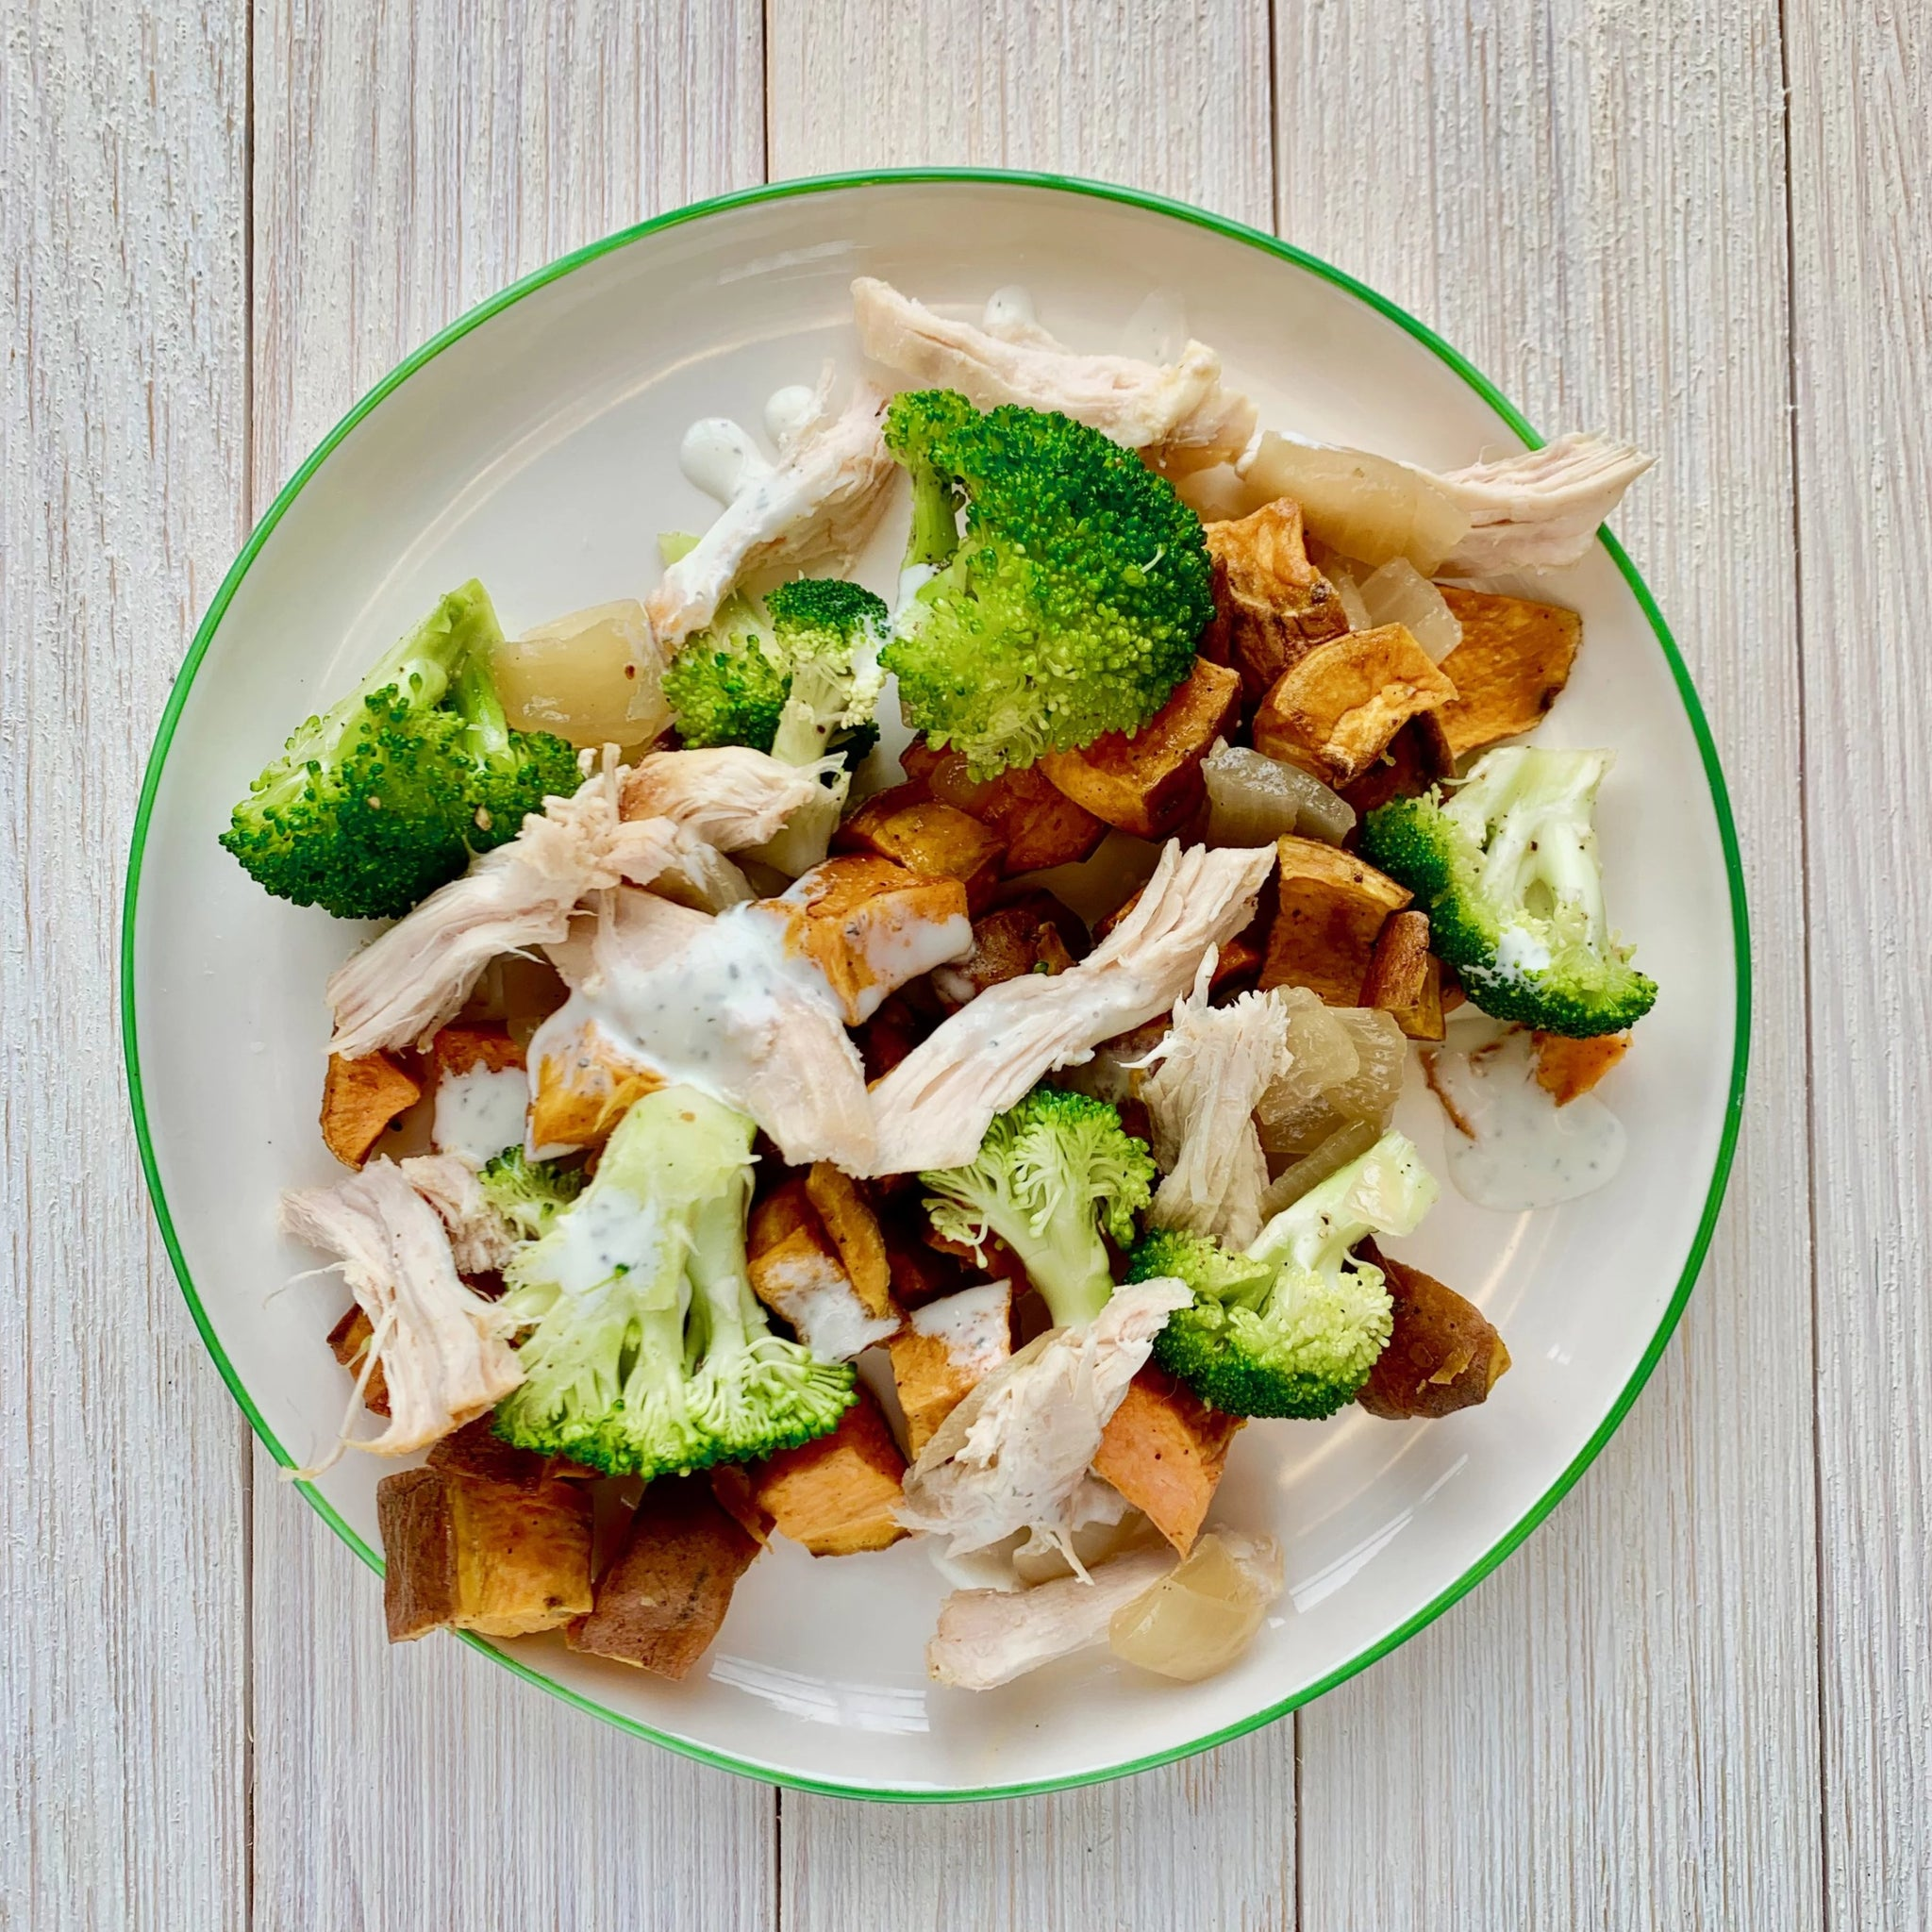 Roasted Sweet Potato Bowl with Chicken, Broccoli, Caramelized Onions and Herb Cream